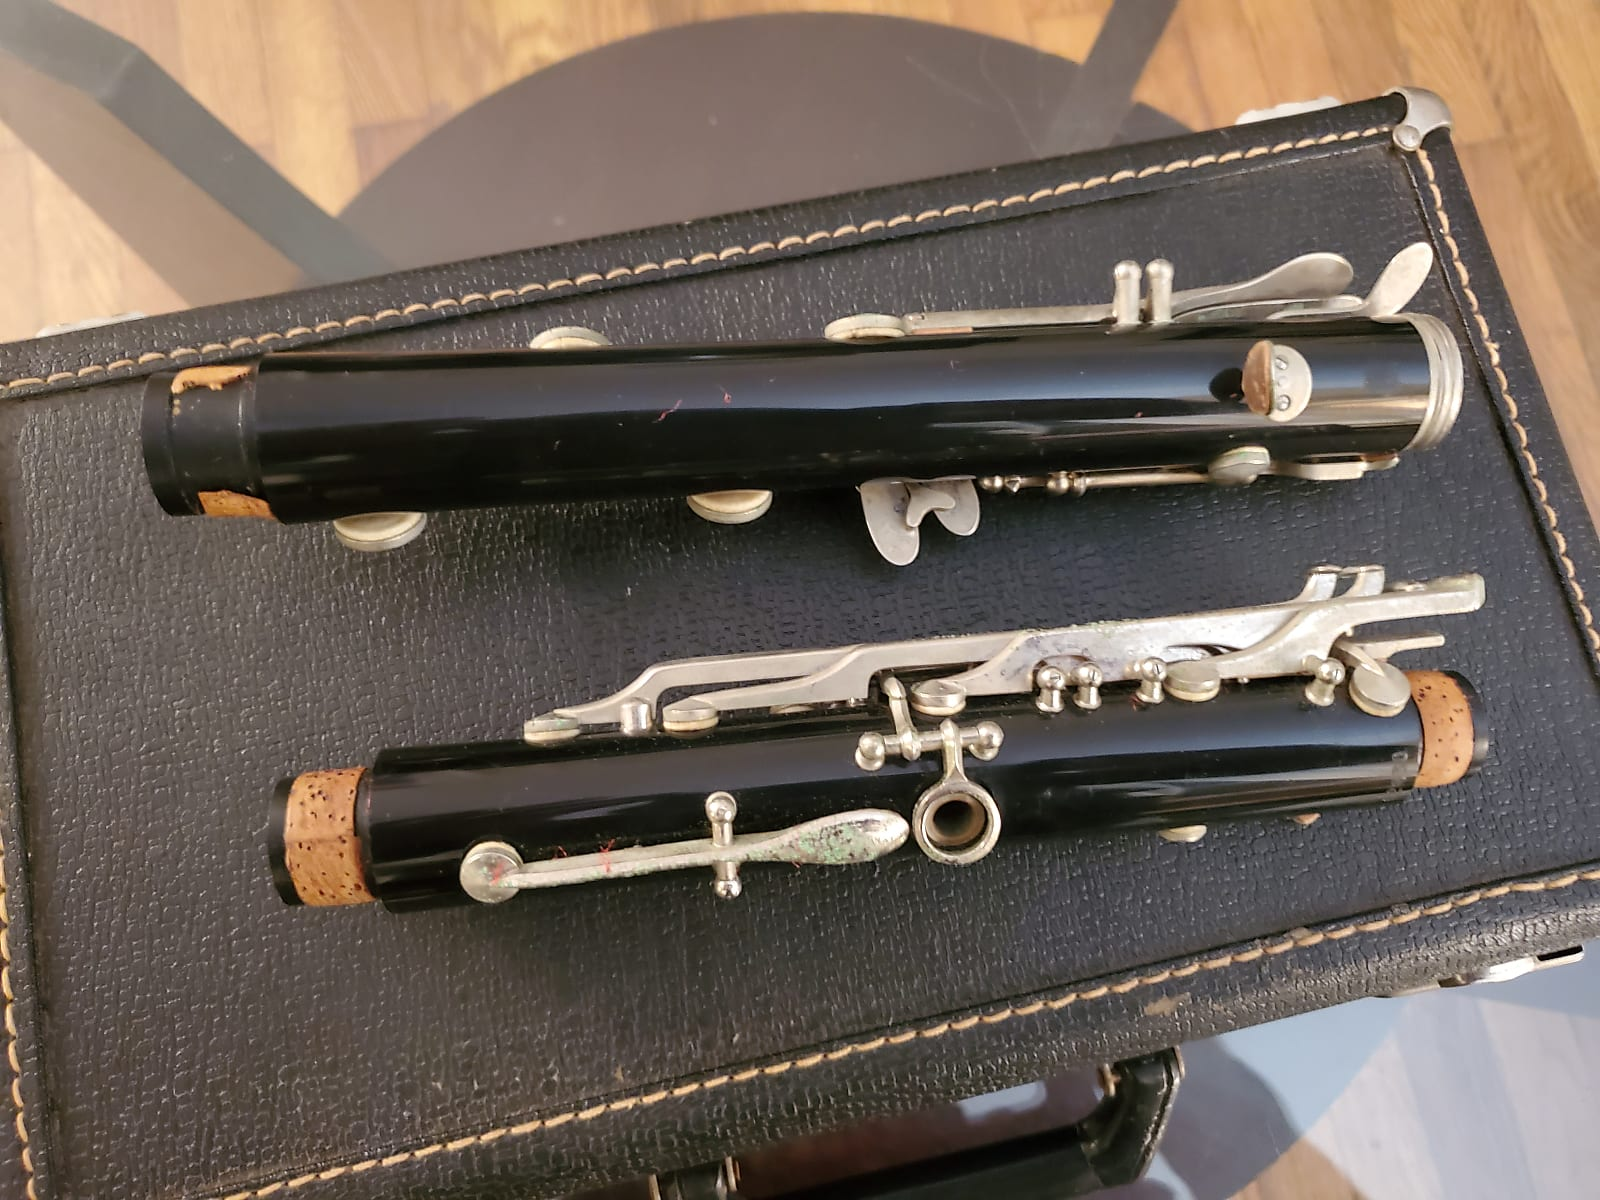 Vito Reso-Tone 3 Vintage Clarinet w/ Hardshell Case, As Is Condition